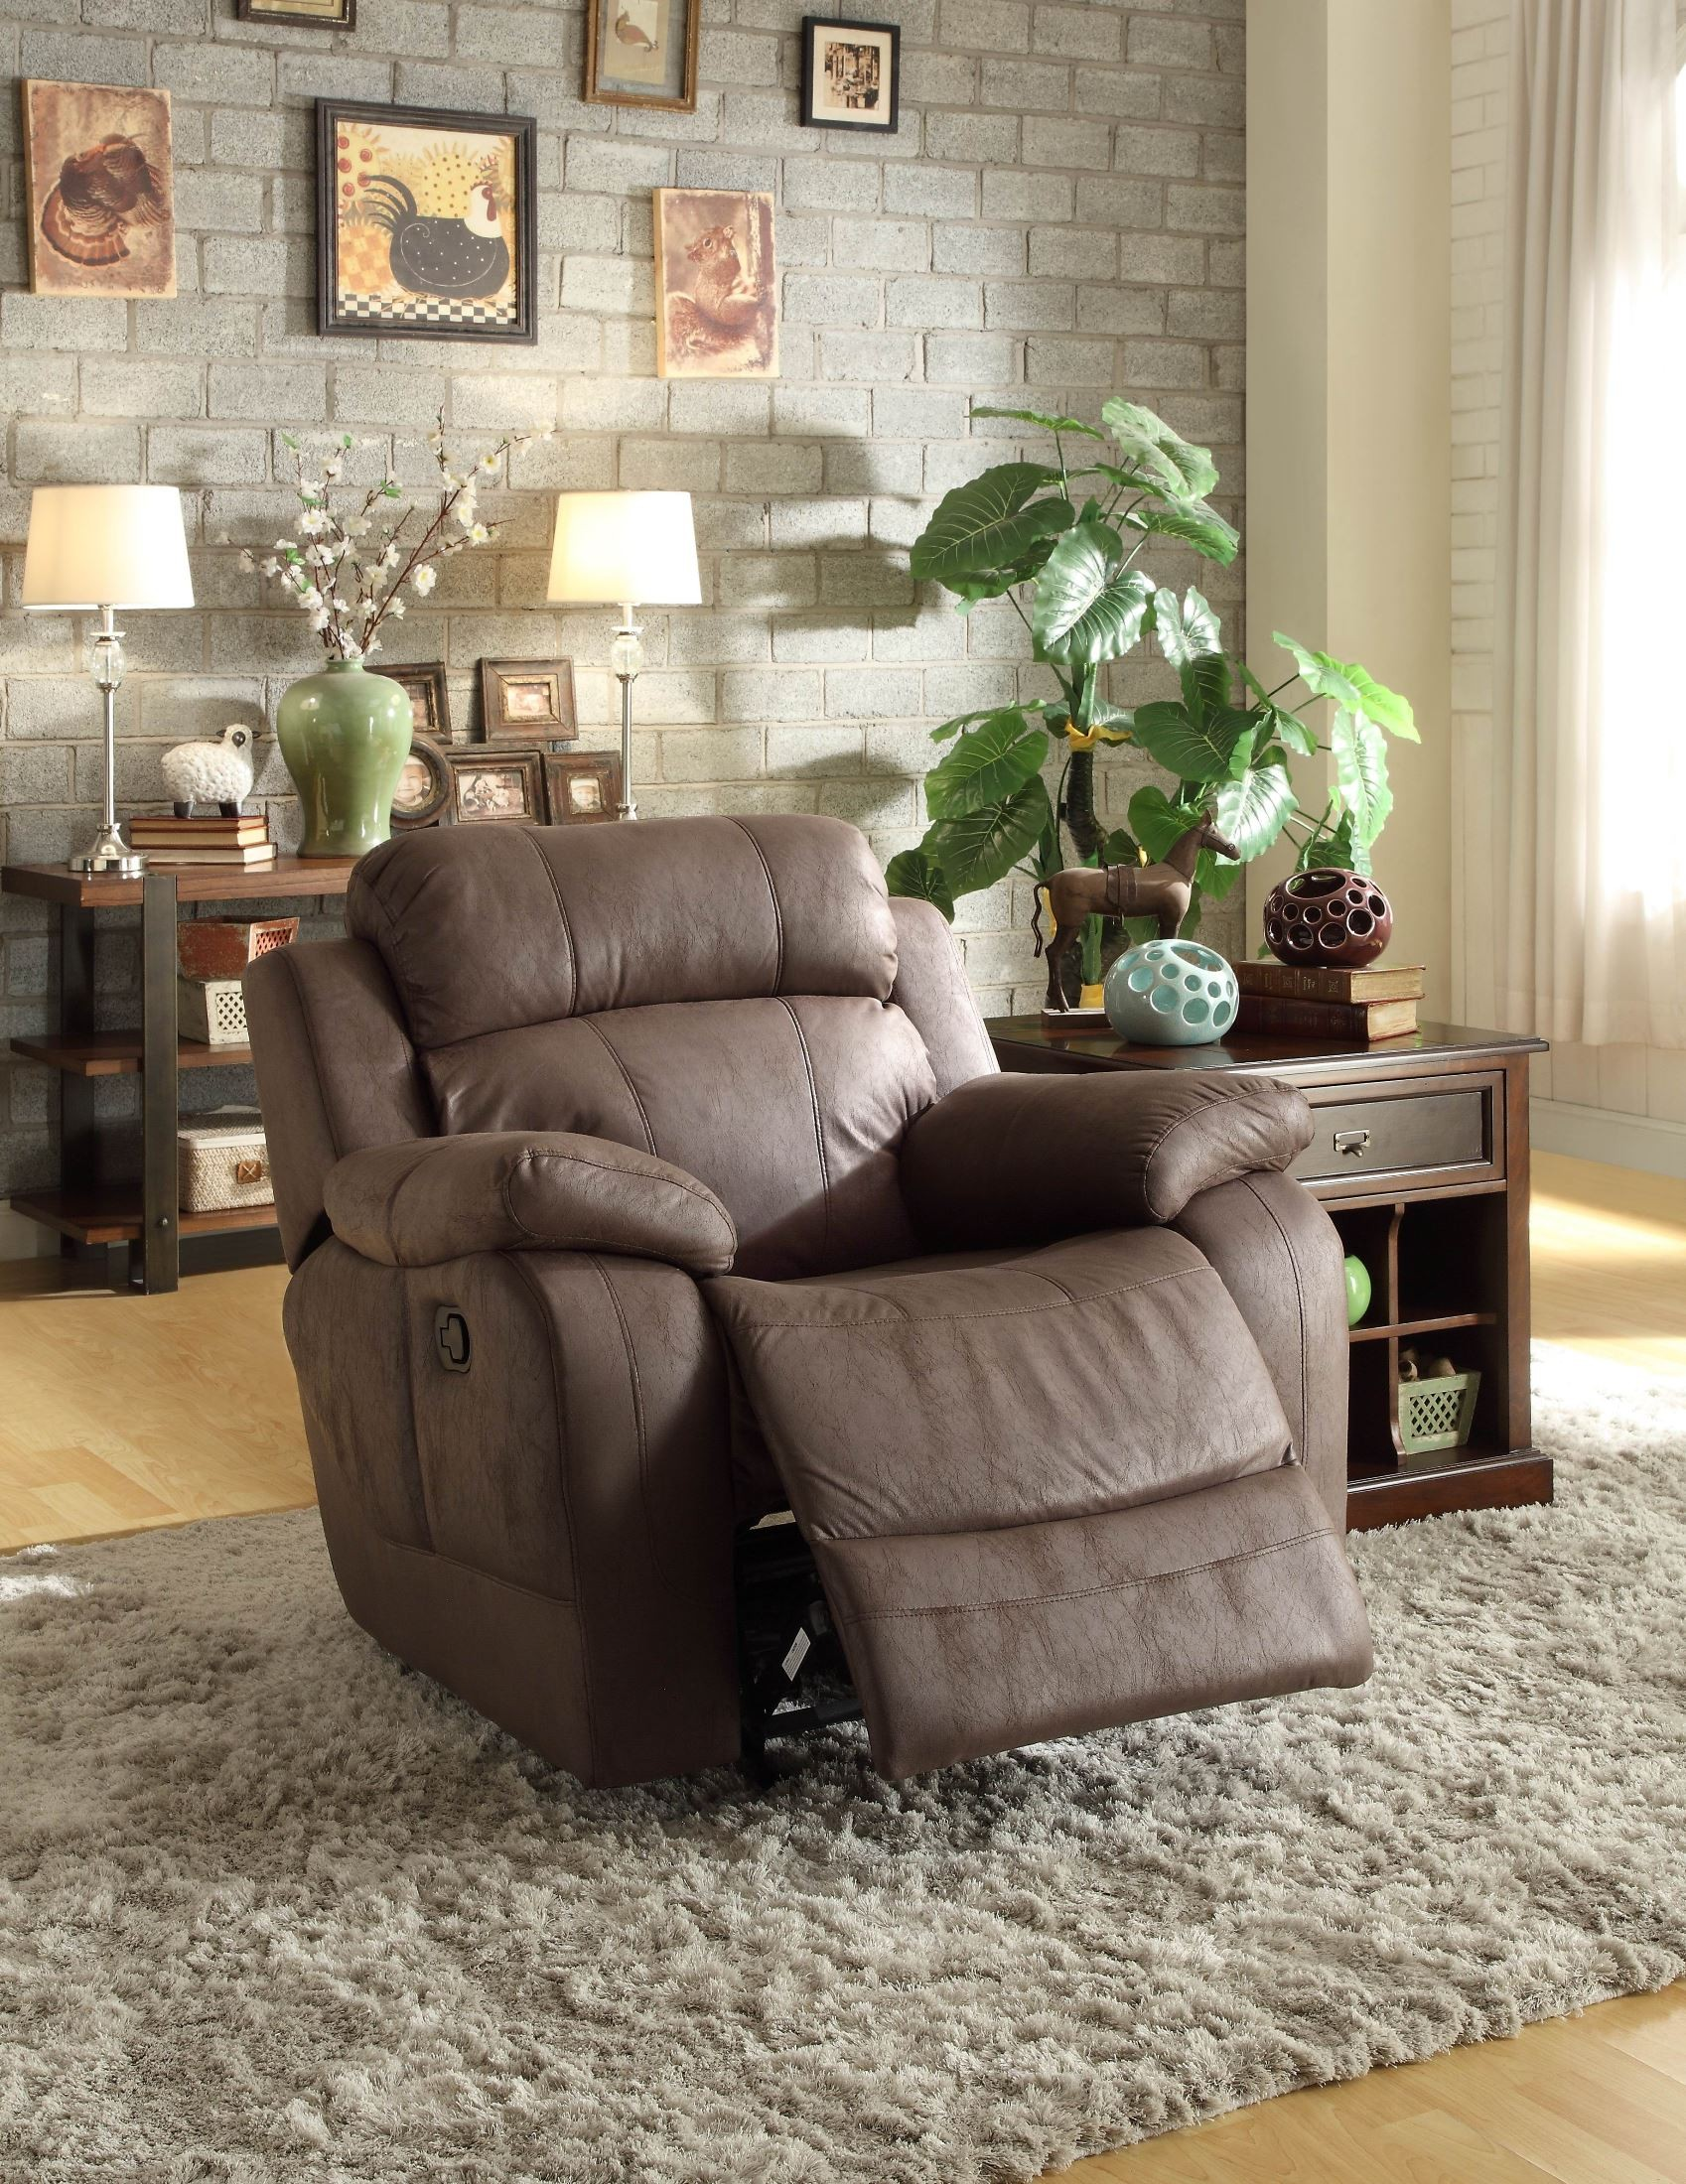 Marille Brown Glider Reclining Chair From Homelegance